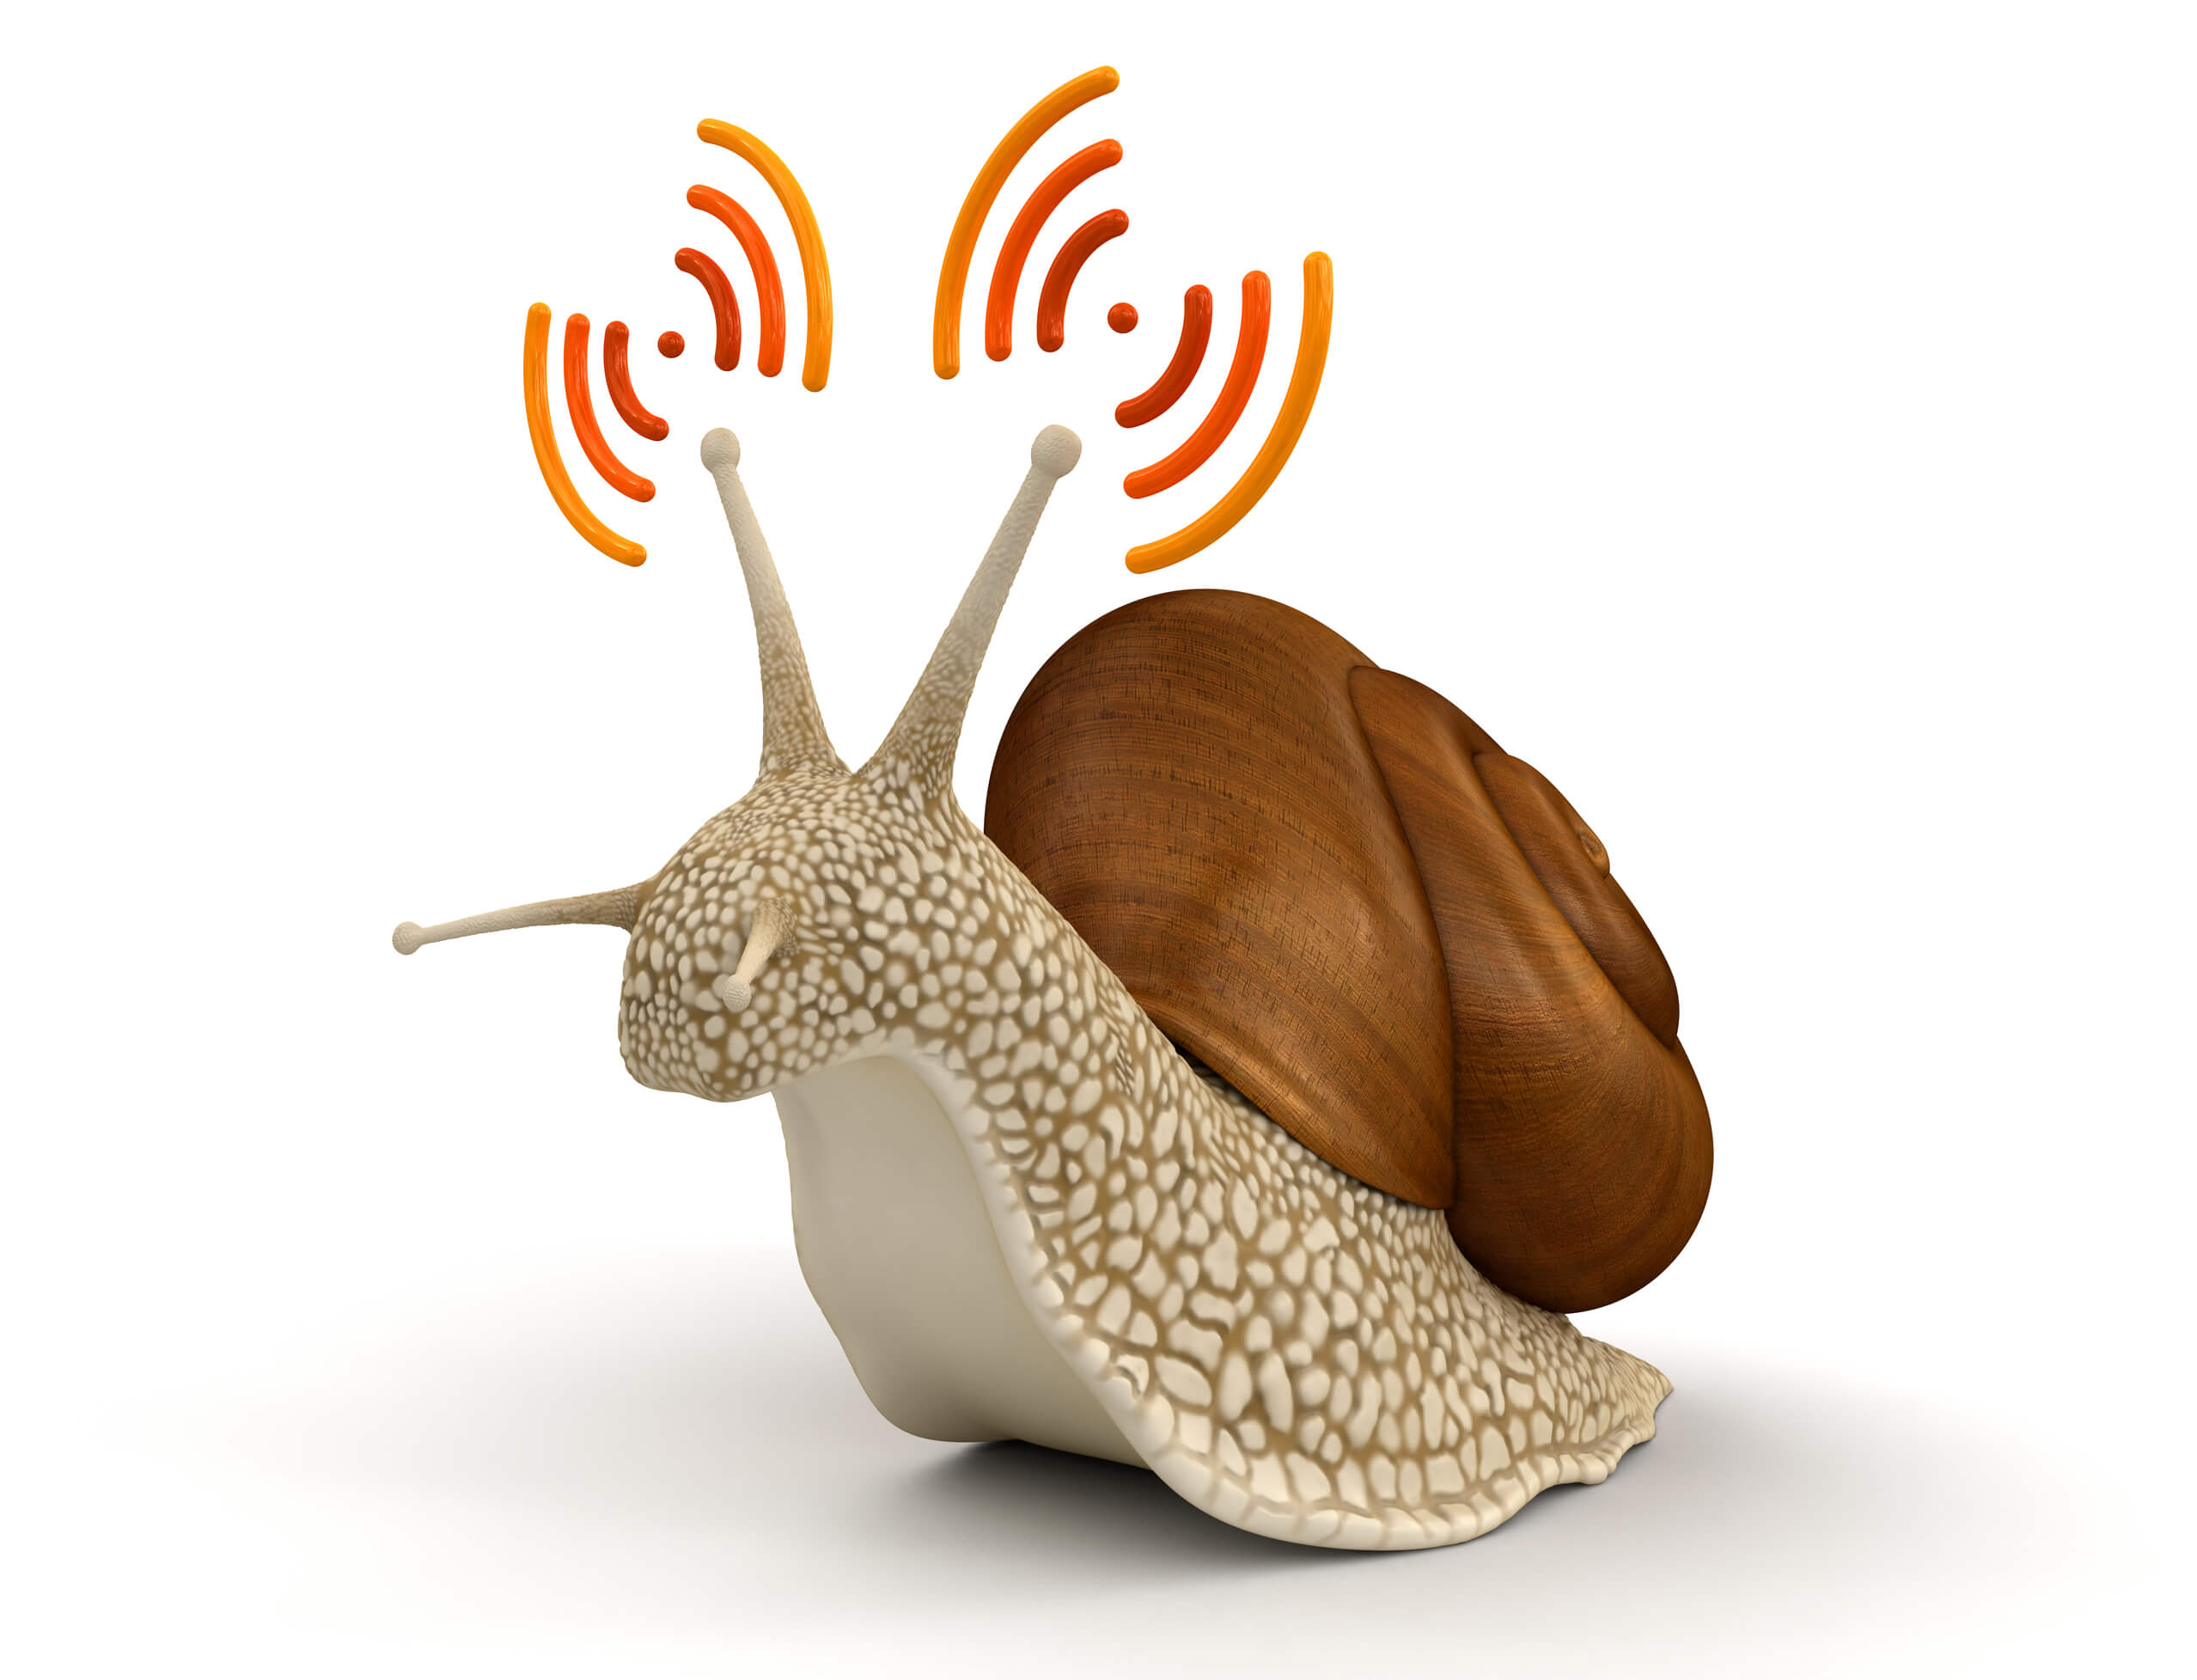 NBN's WiFi Snail - delivery by Wifi is a waste of bandwidth